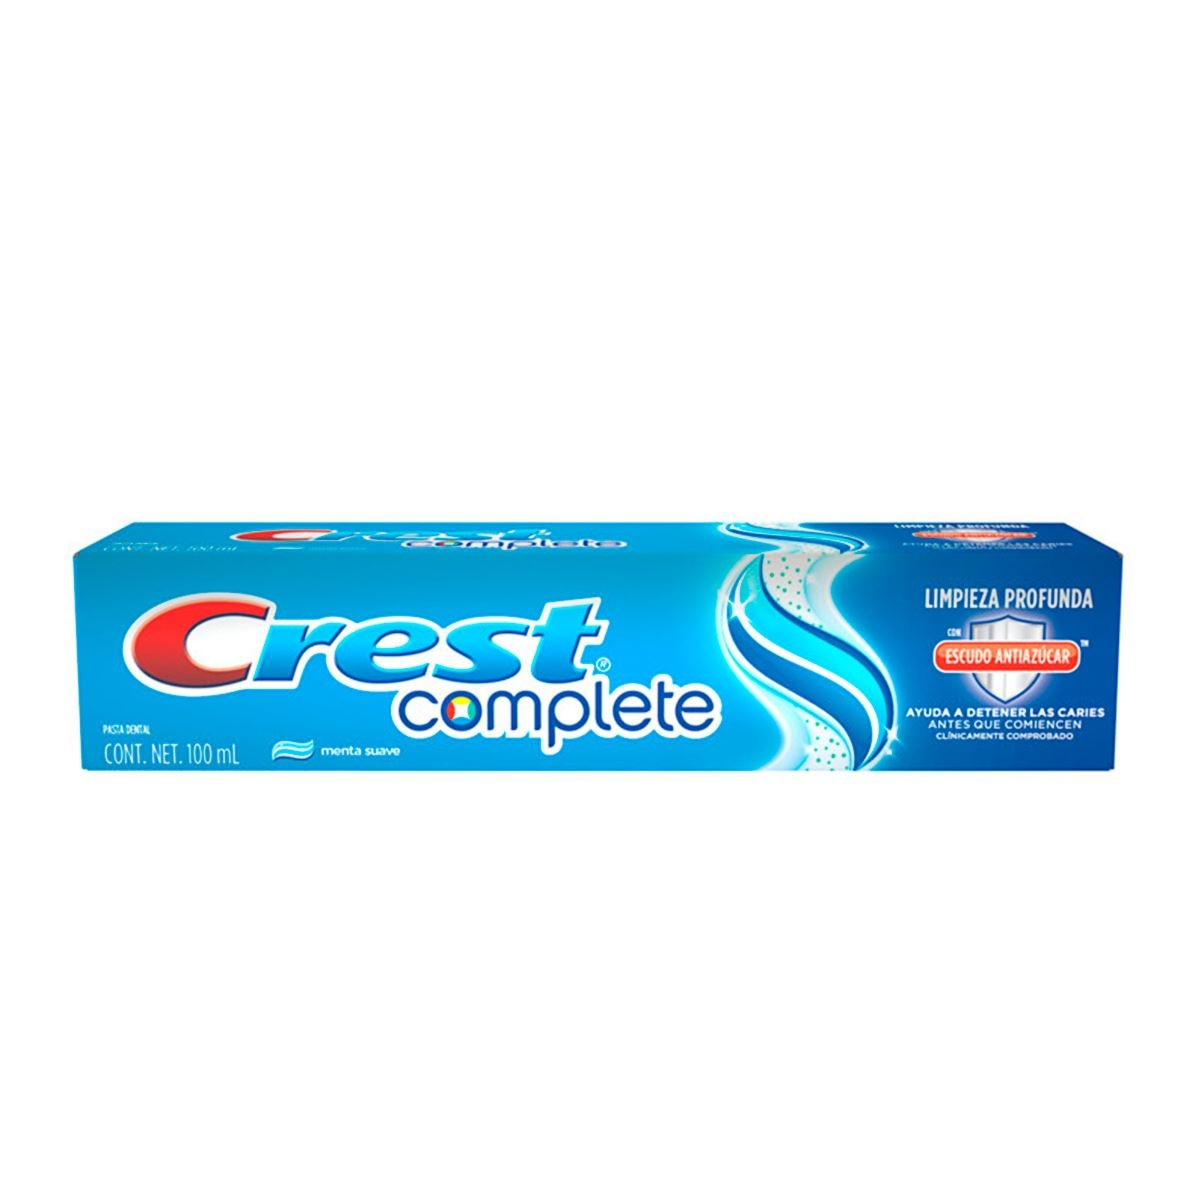 Crema dental crest complete menta suave 100ml  - Sanborns